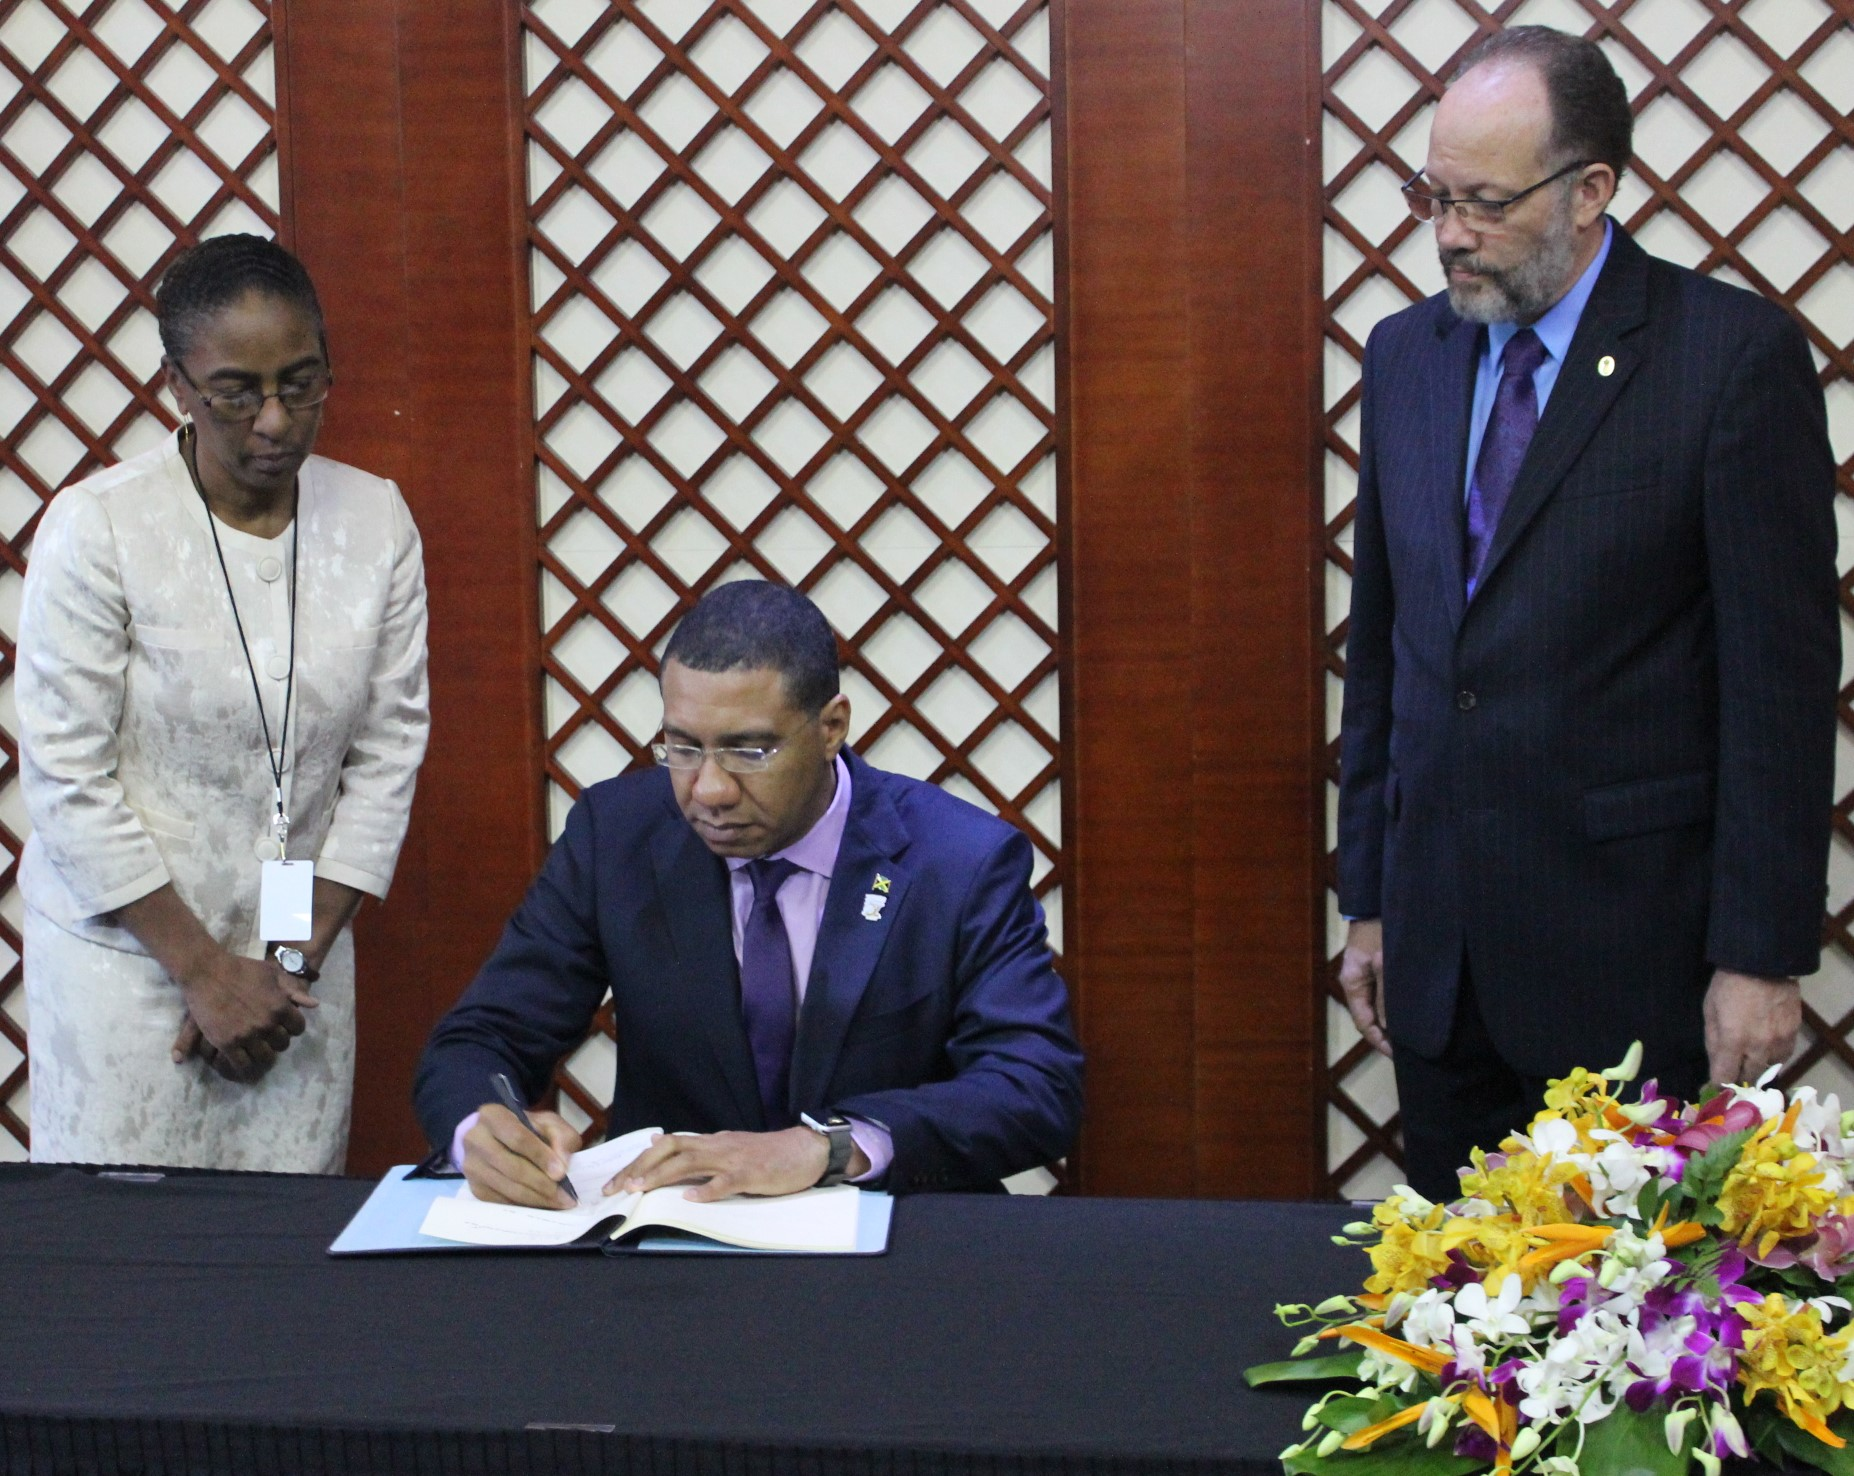 Photo of Jamaica's Prime Minister signs CARICOM Agreements on cooperation in Education and Security